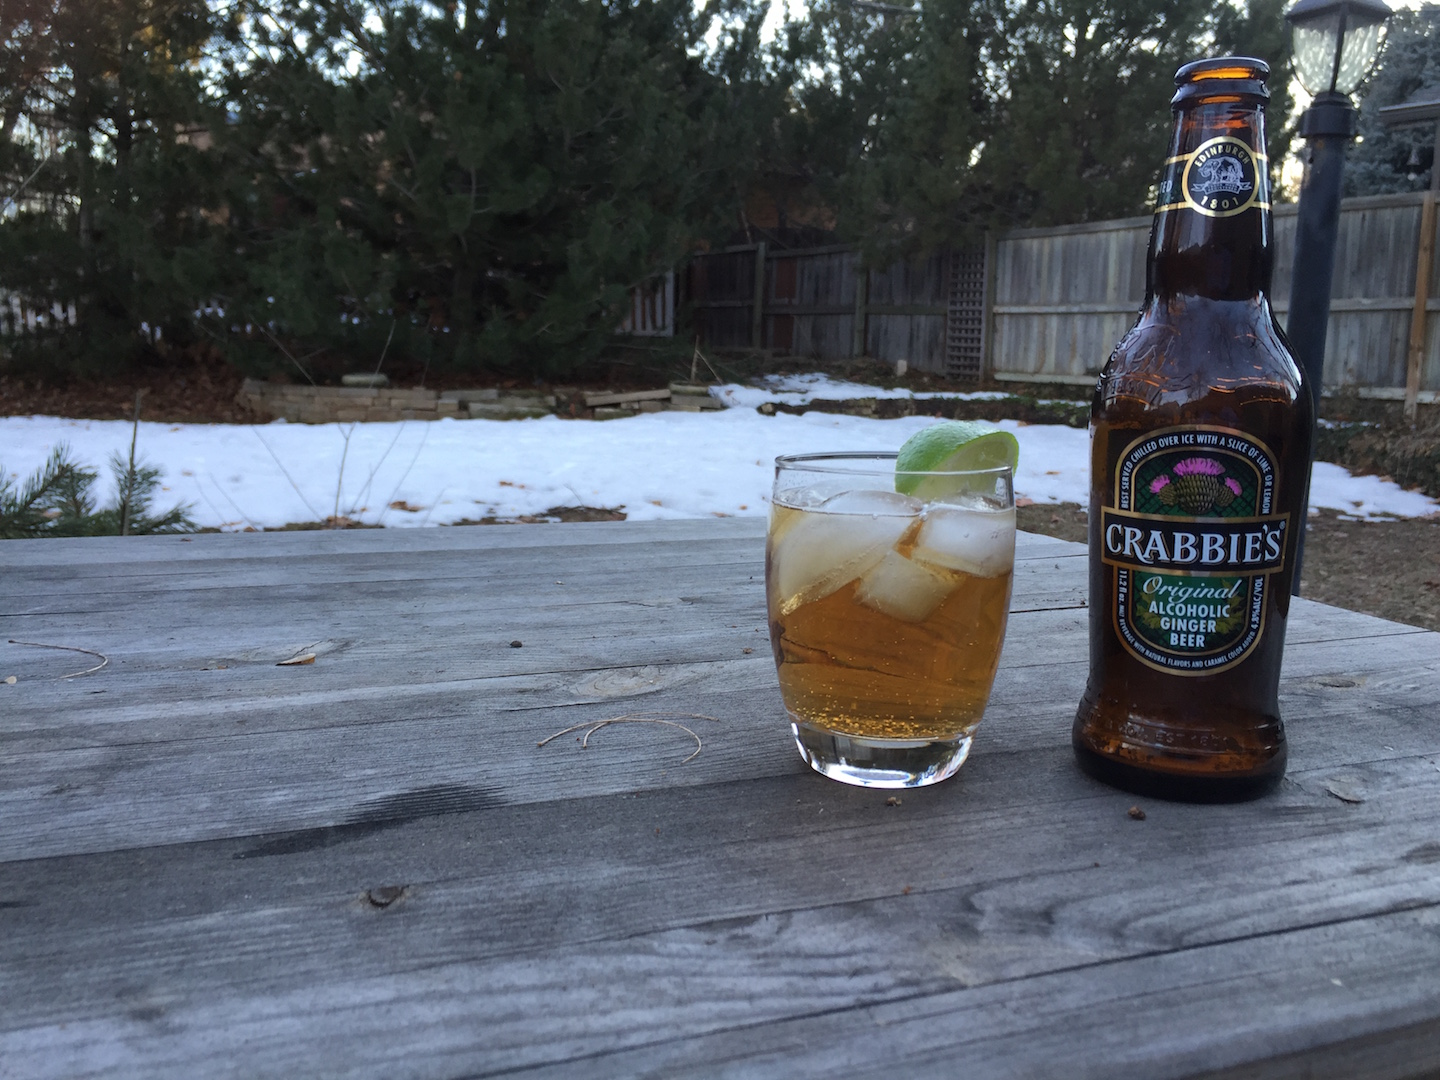 Crabbie's Original ginger beer glass bottle ice